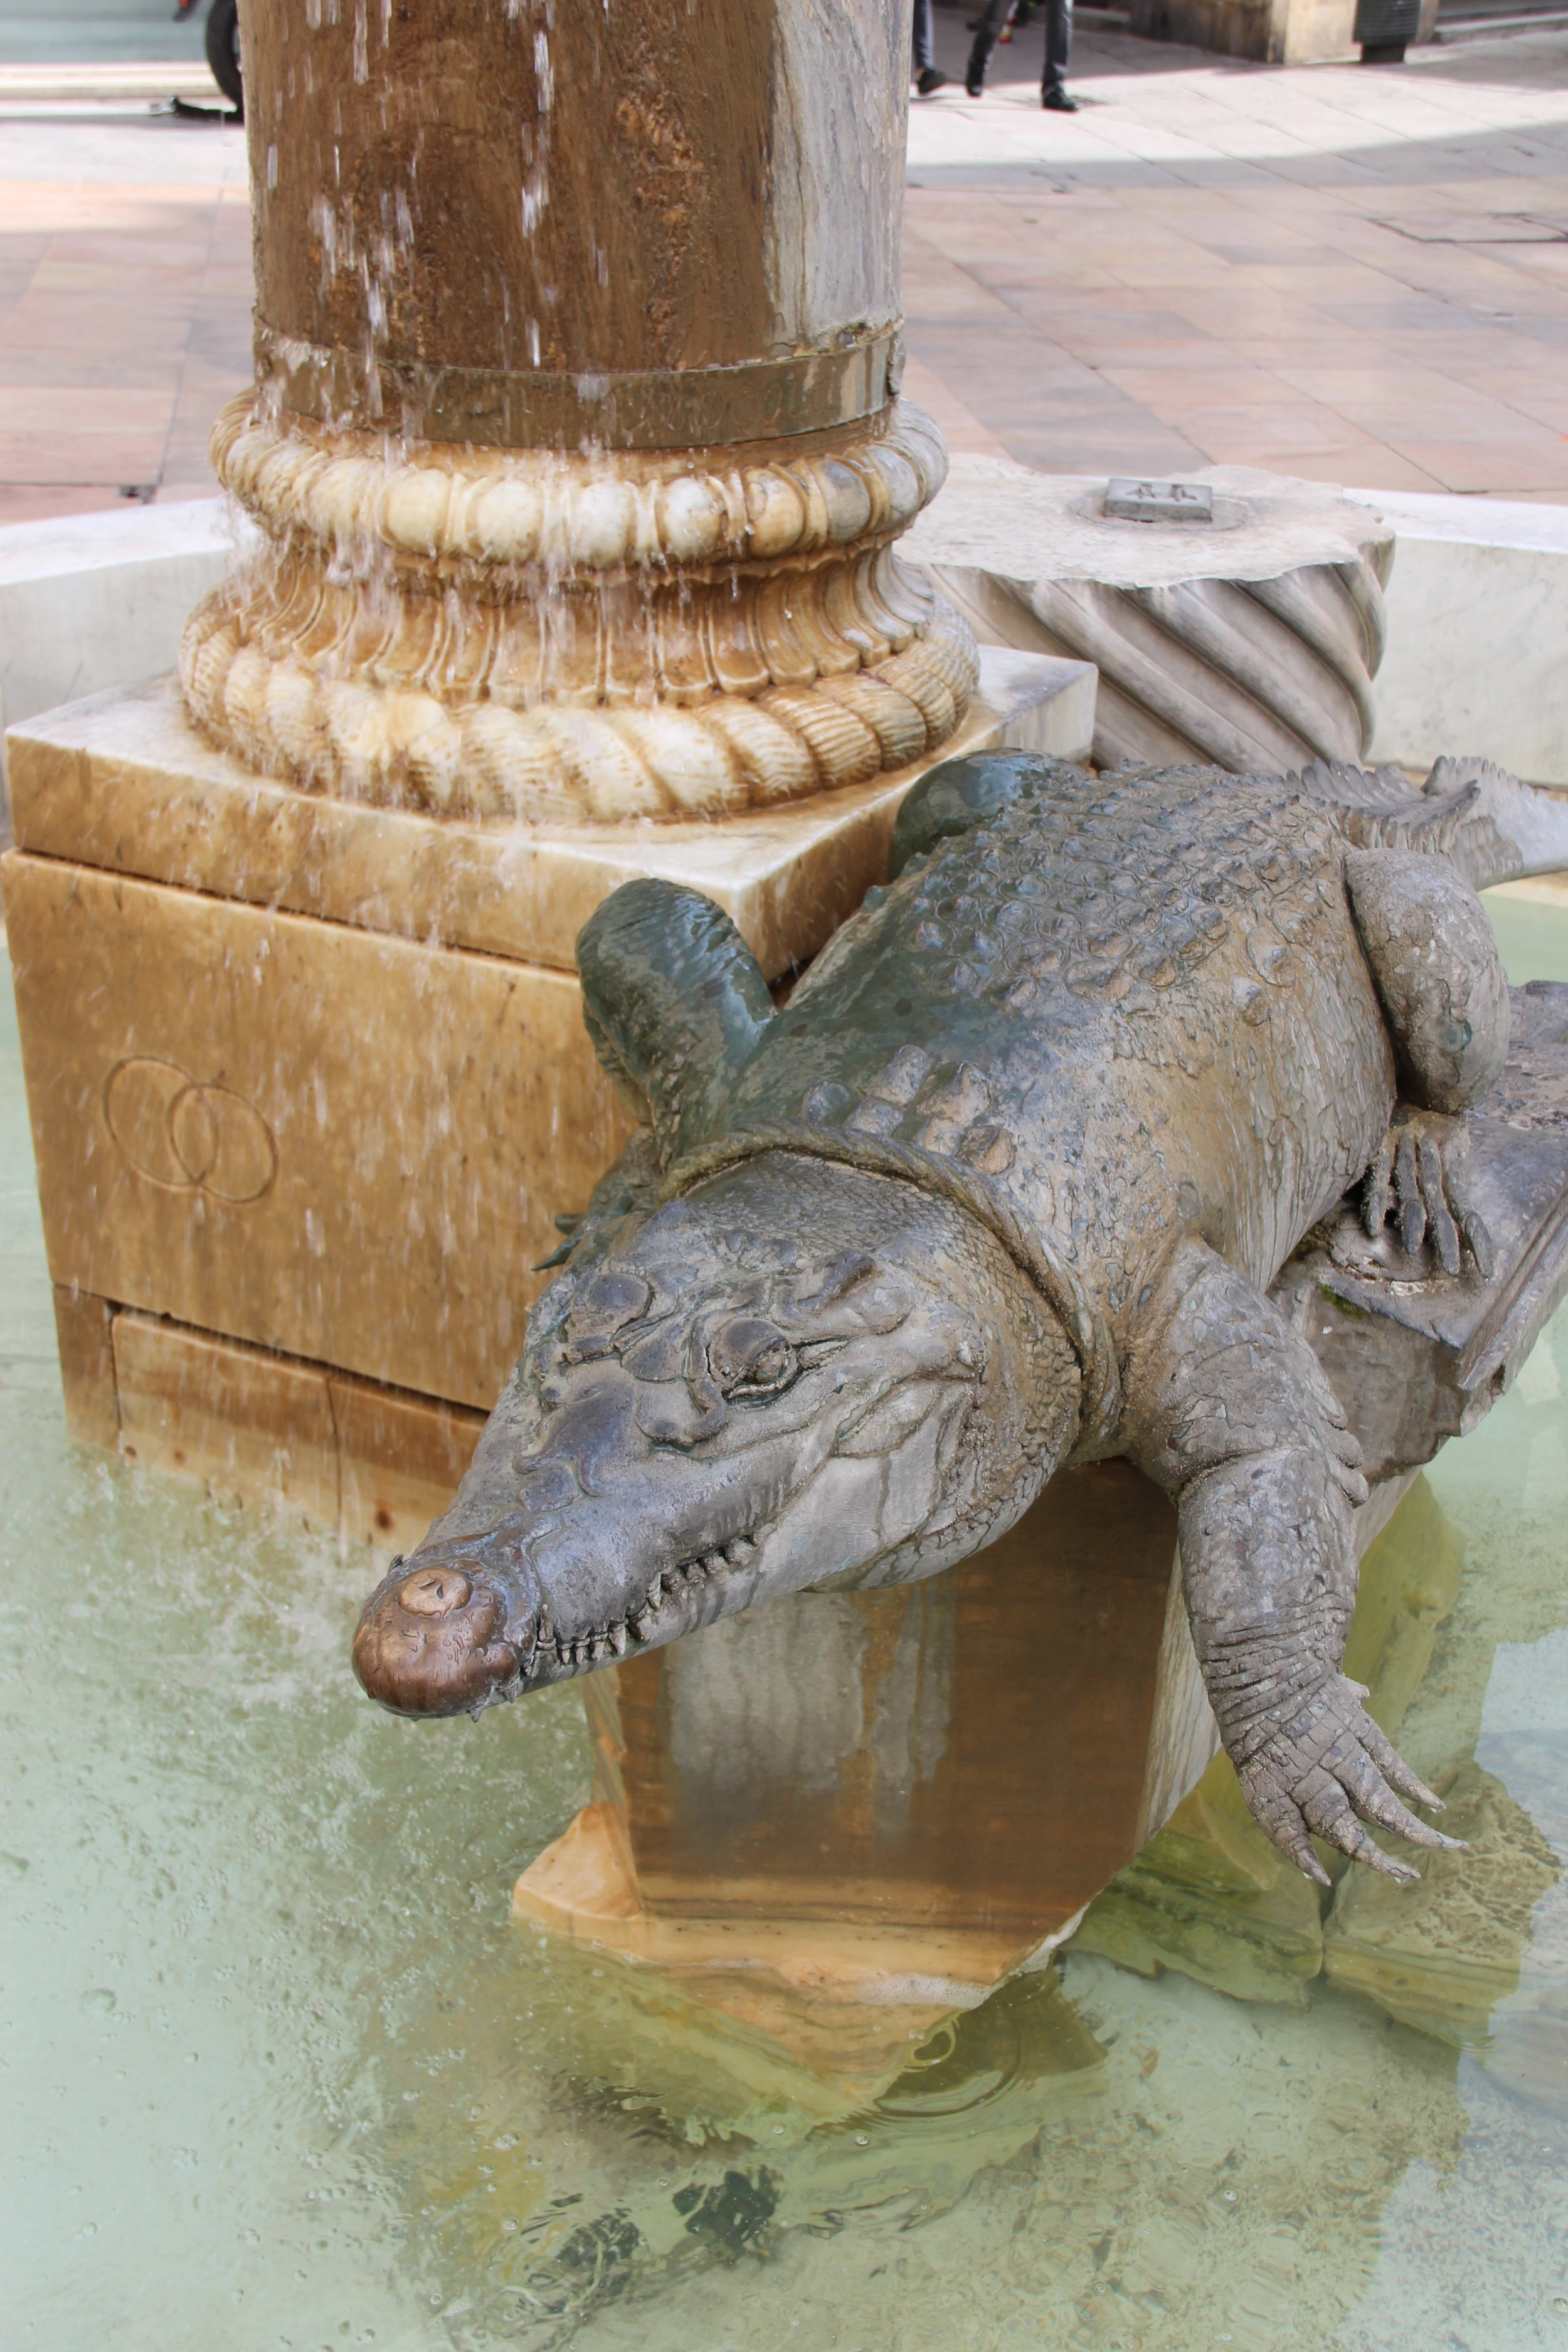 The crocodile of Nimes, a reminder for the legionnaires of times in Egypt perhaps?